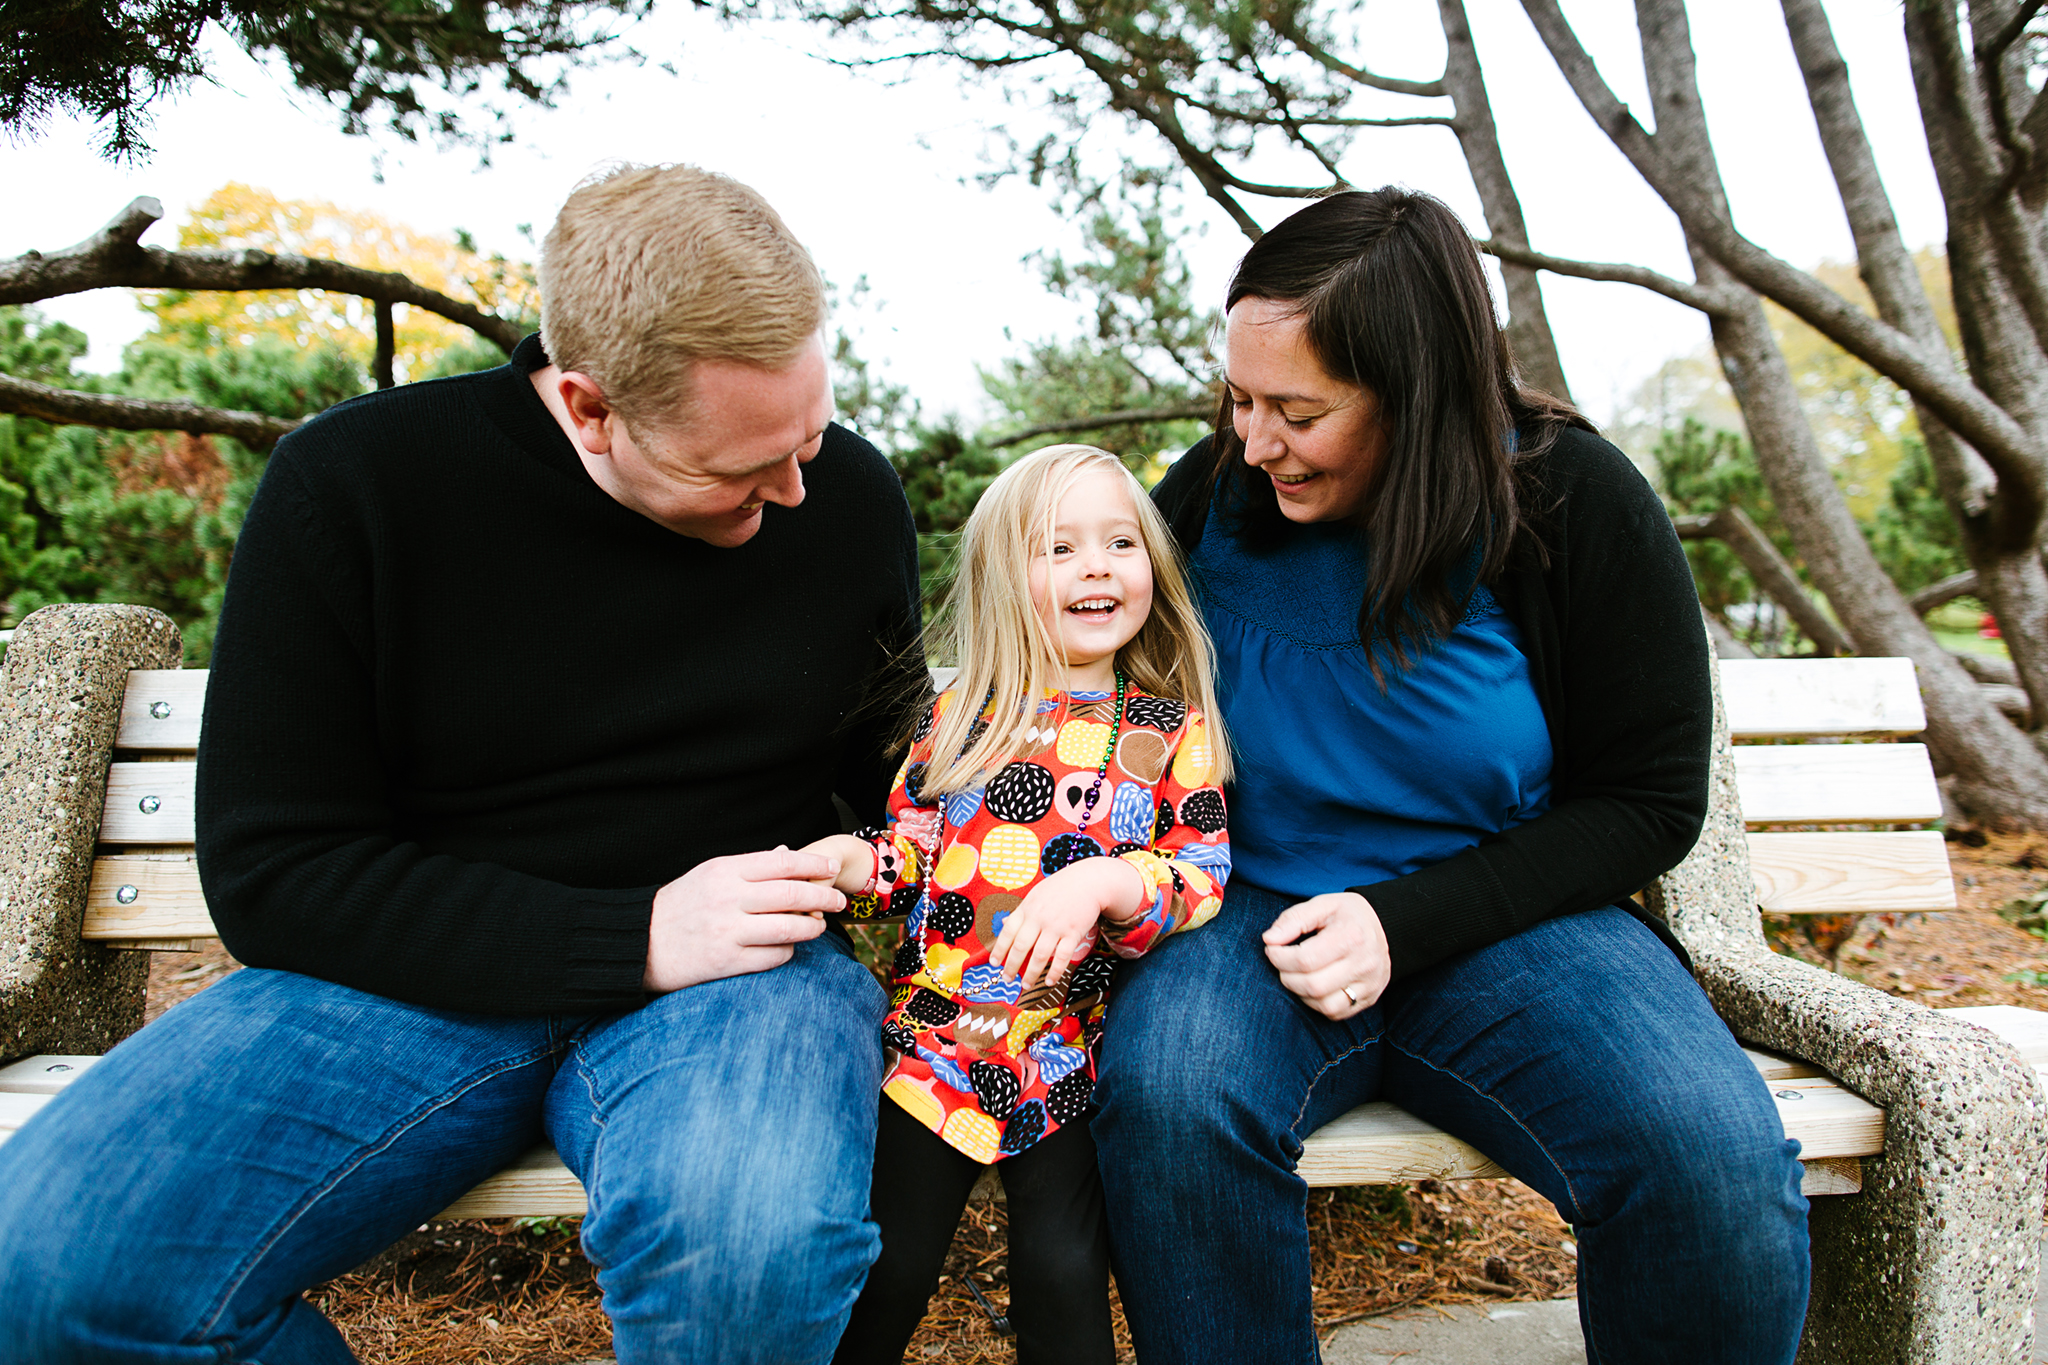 Bellevue Family Portrait Photographer